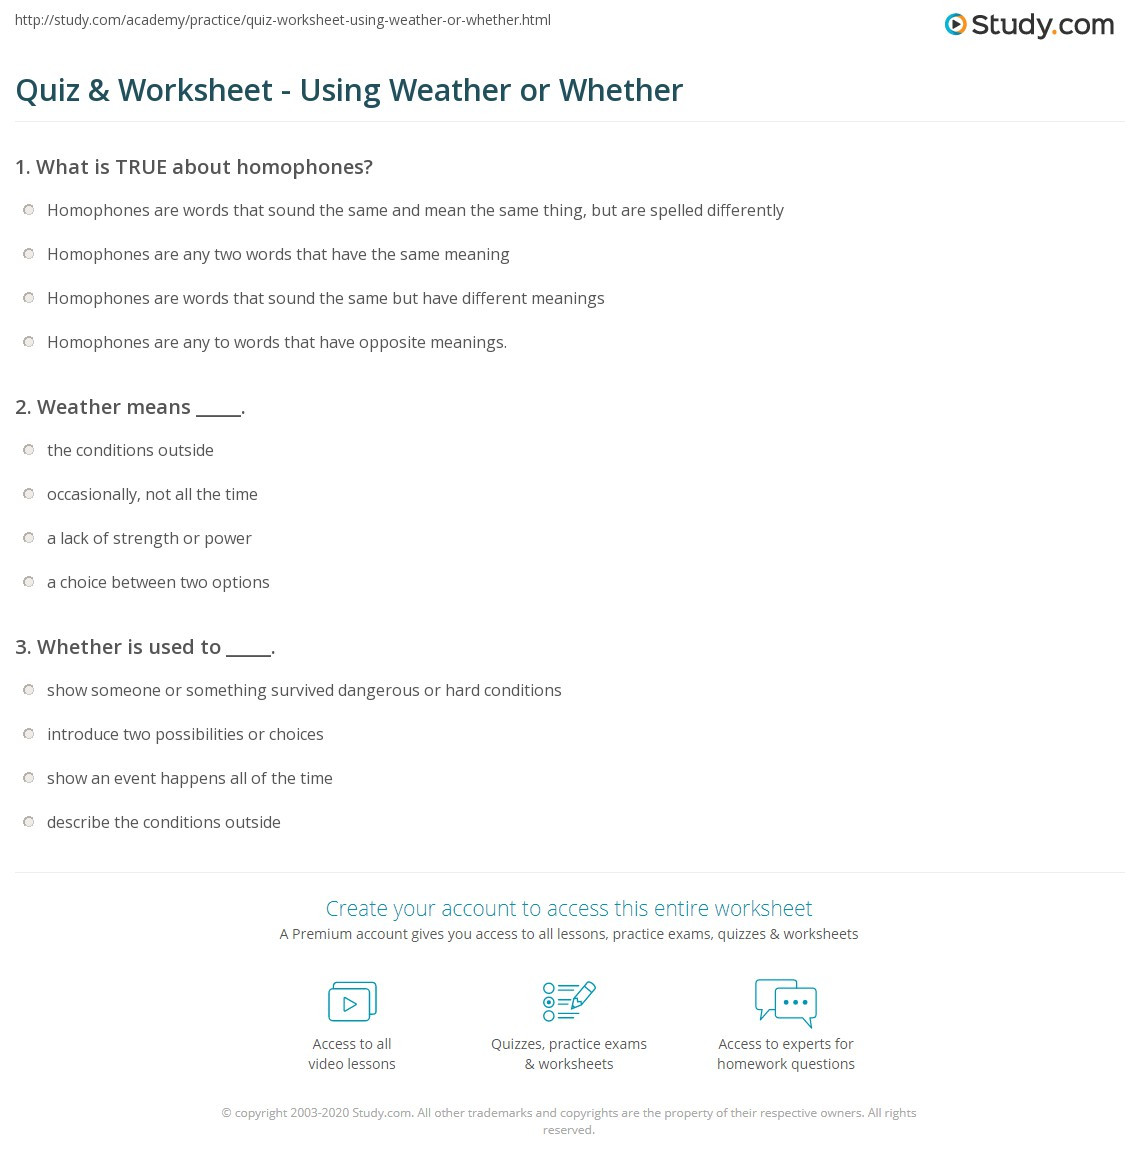 Homophone Worksheets Middle School Quiz & Worksheet Using Weather or whether